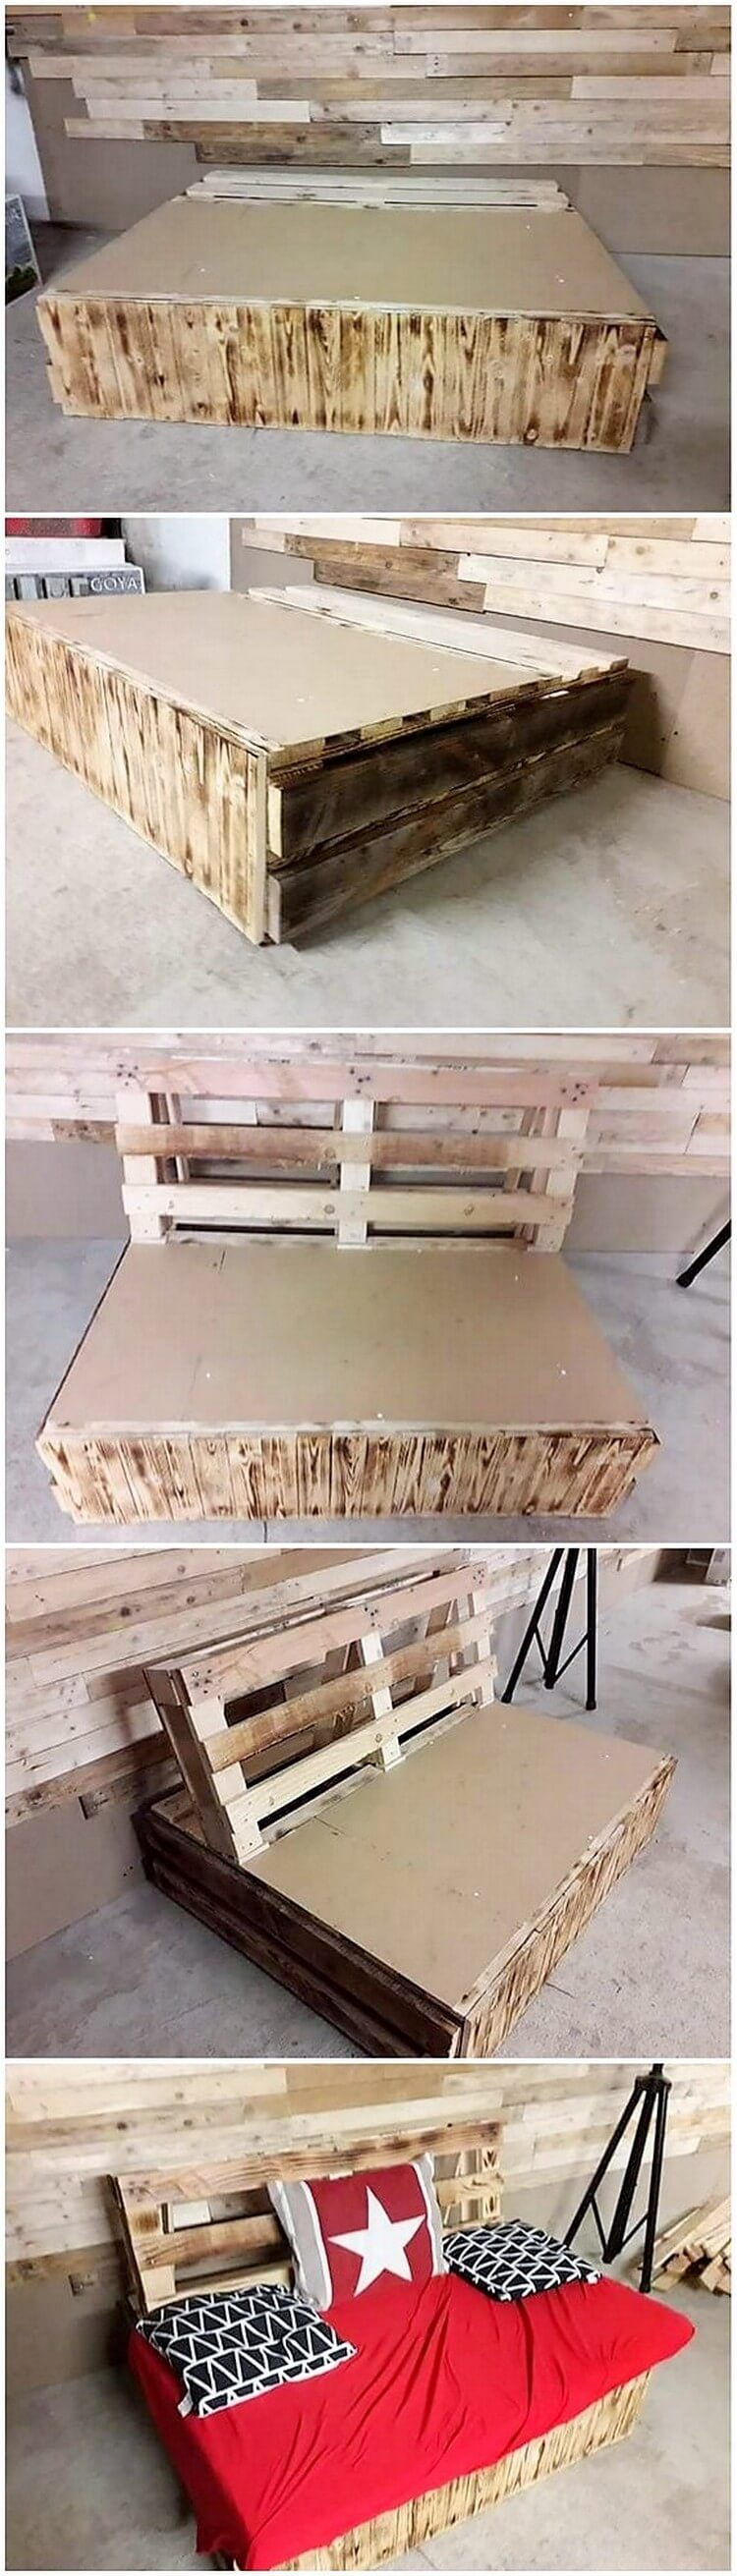 DIY Pallet Daybed or Couch